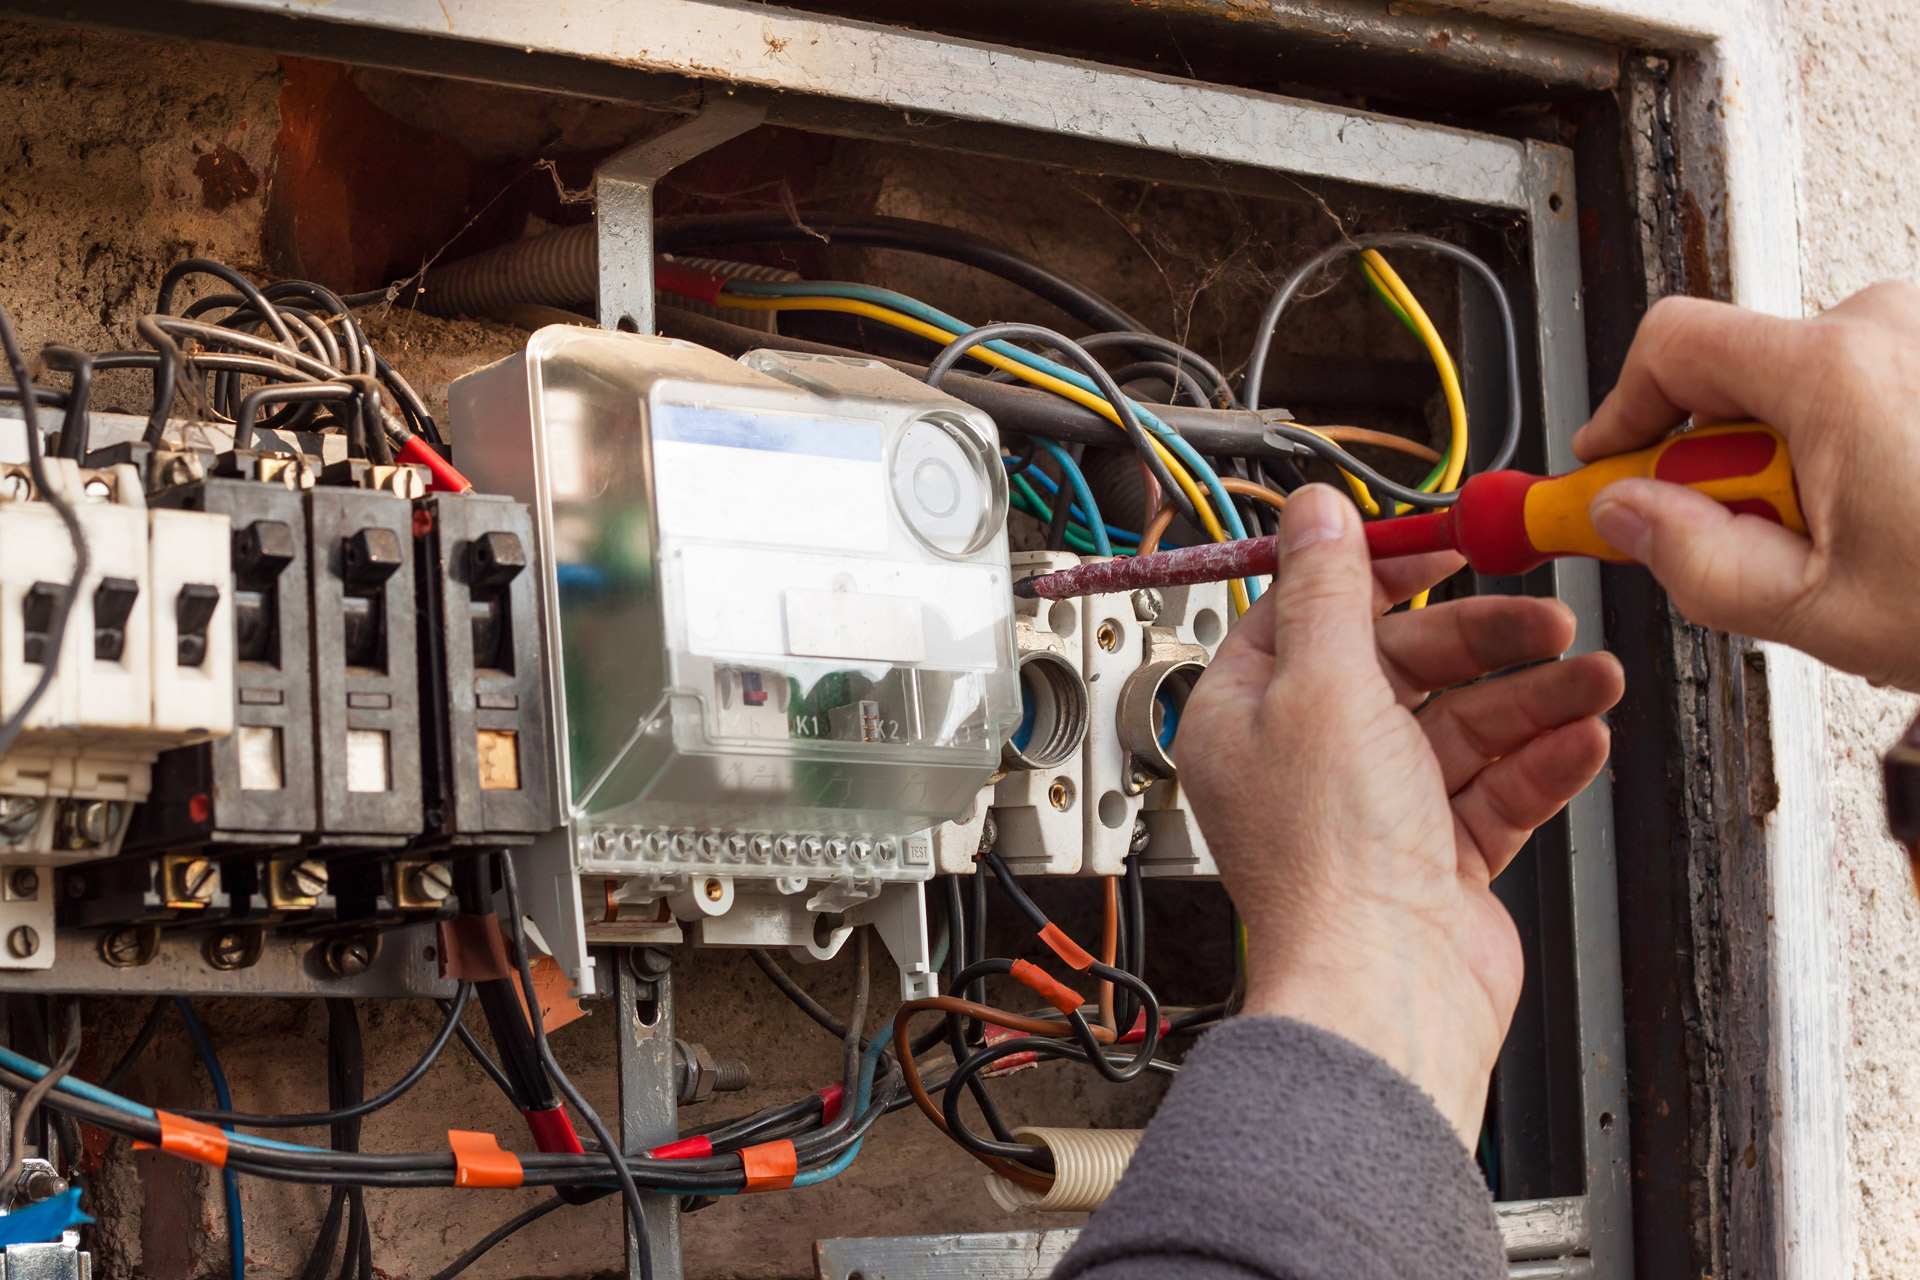 Gate Automation Engineers Recruiting Now Call Today For Further Electrical Wiring Jobs In London Information